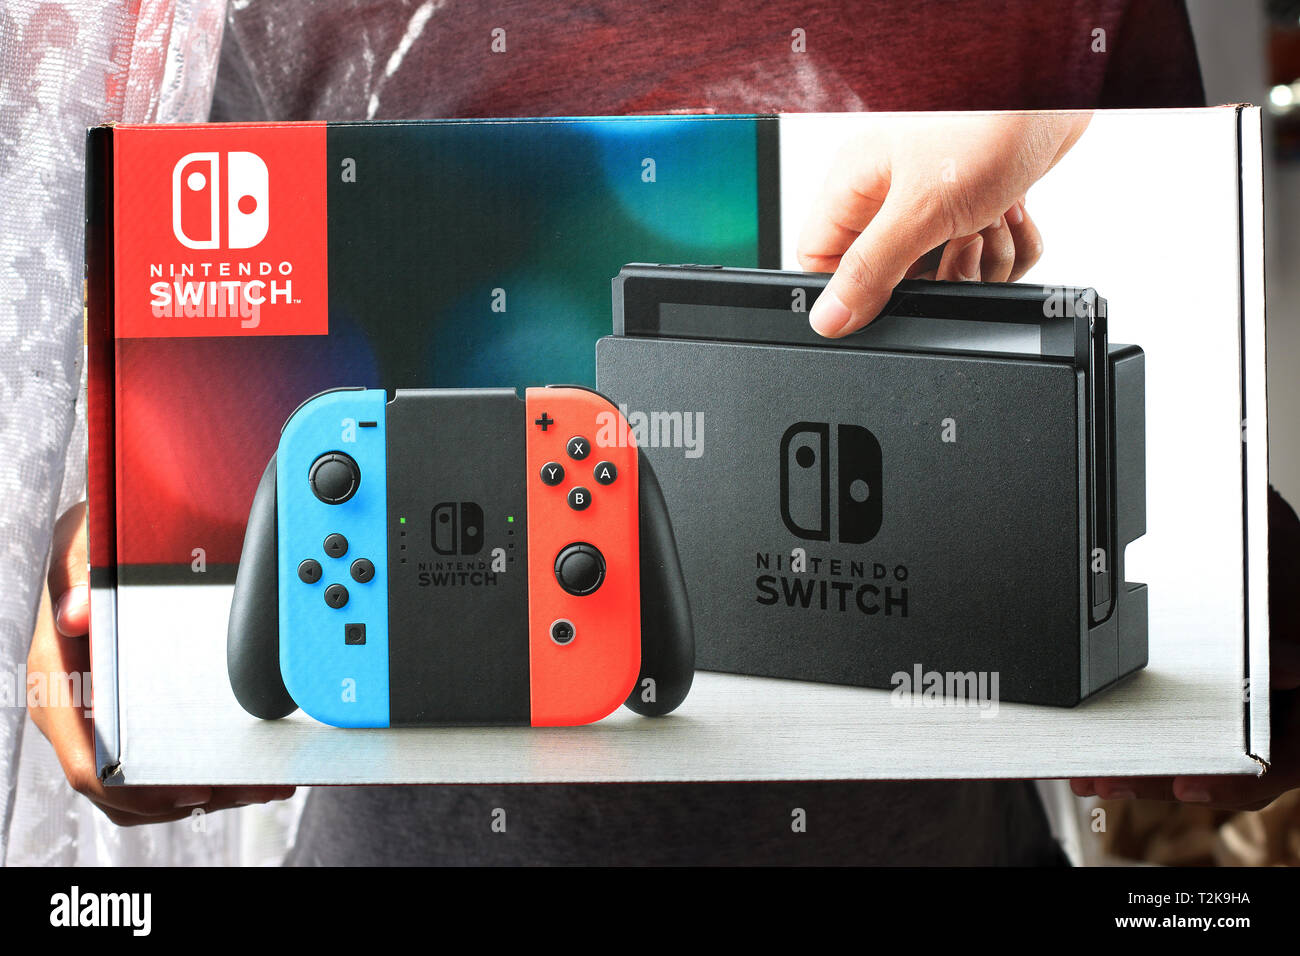 Nintendo switch games console Stock Photo